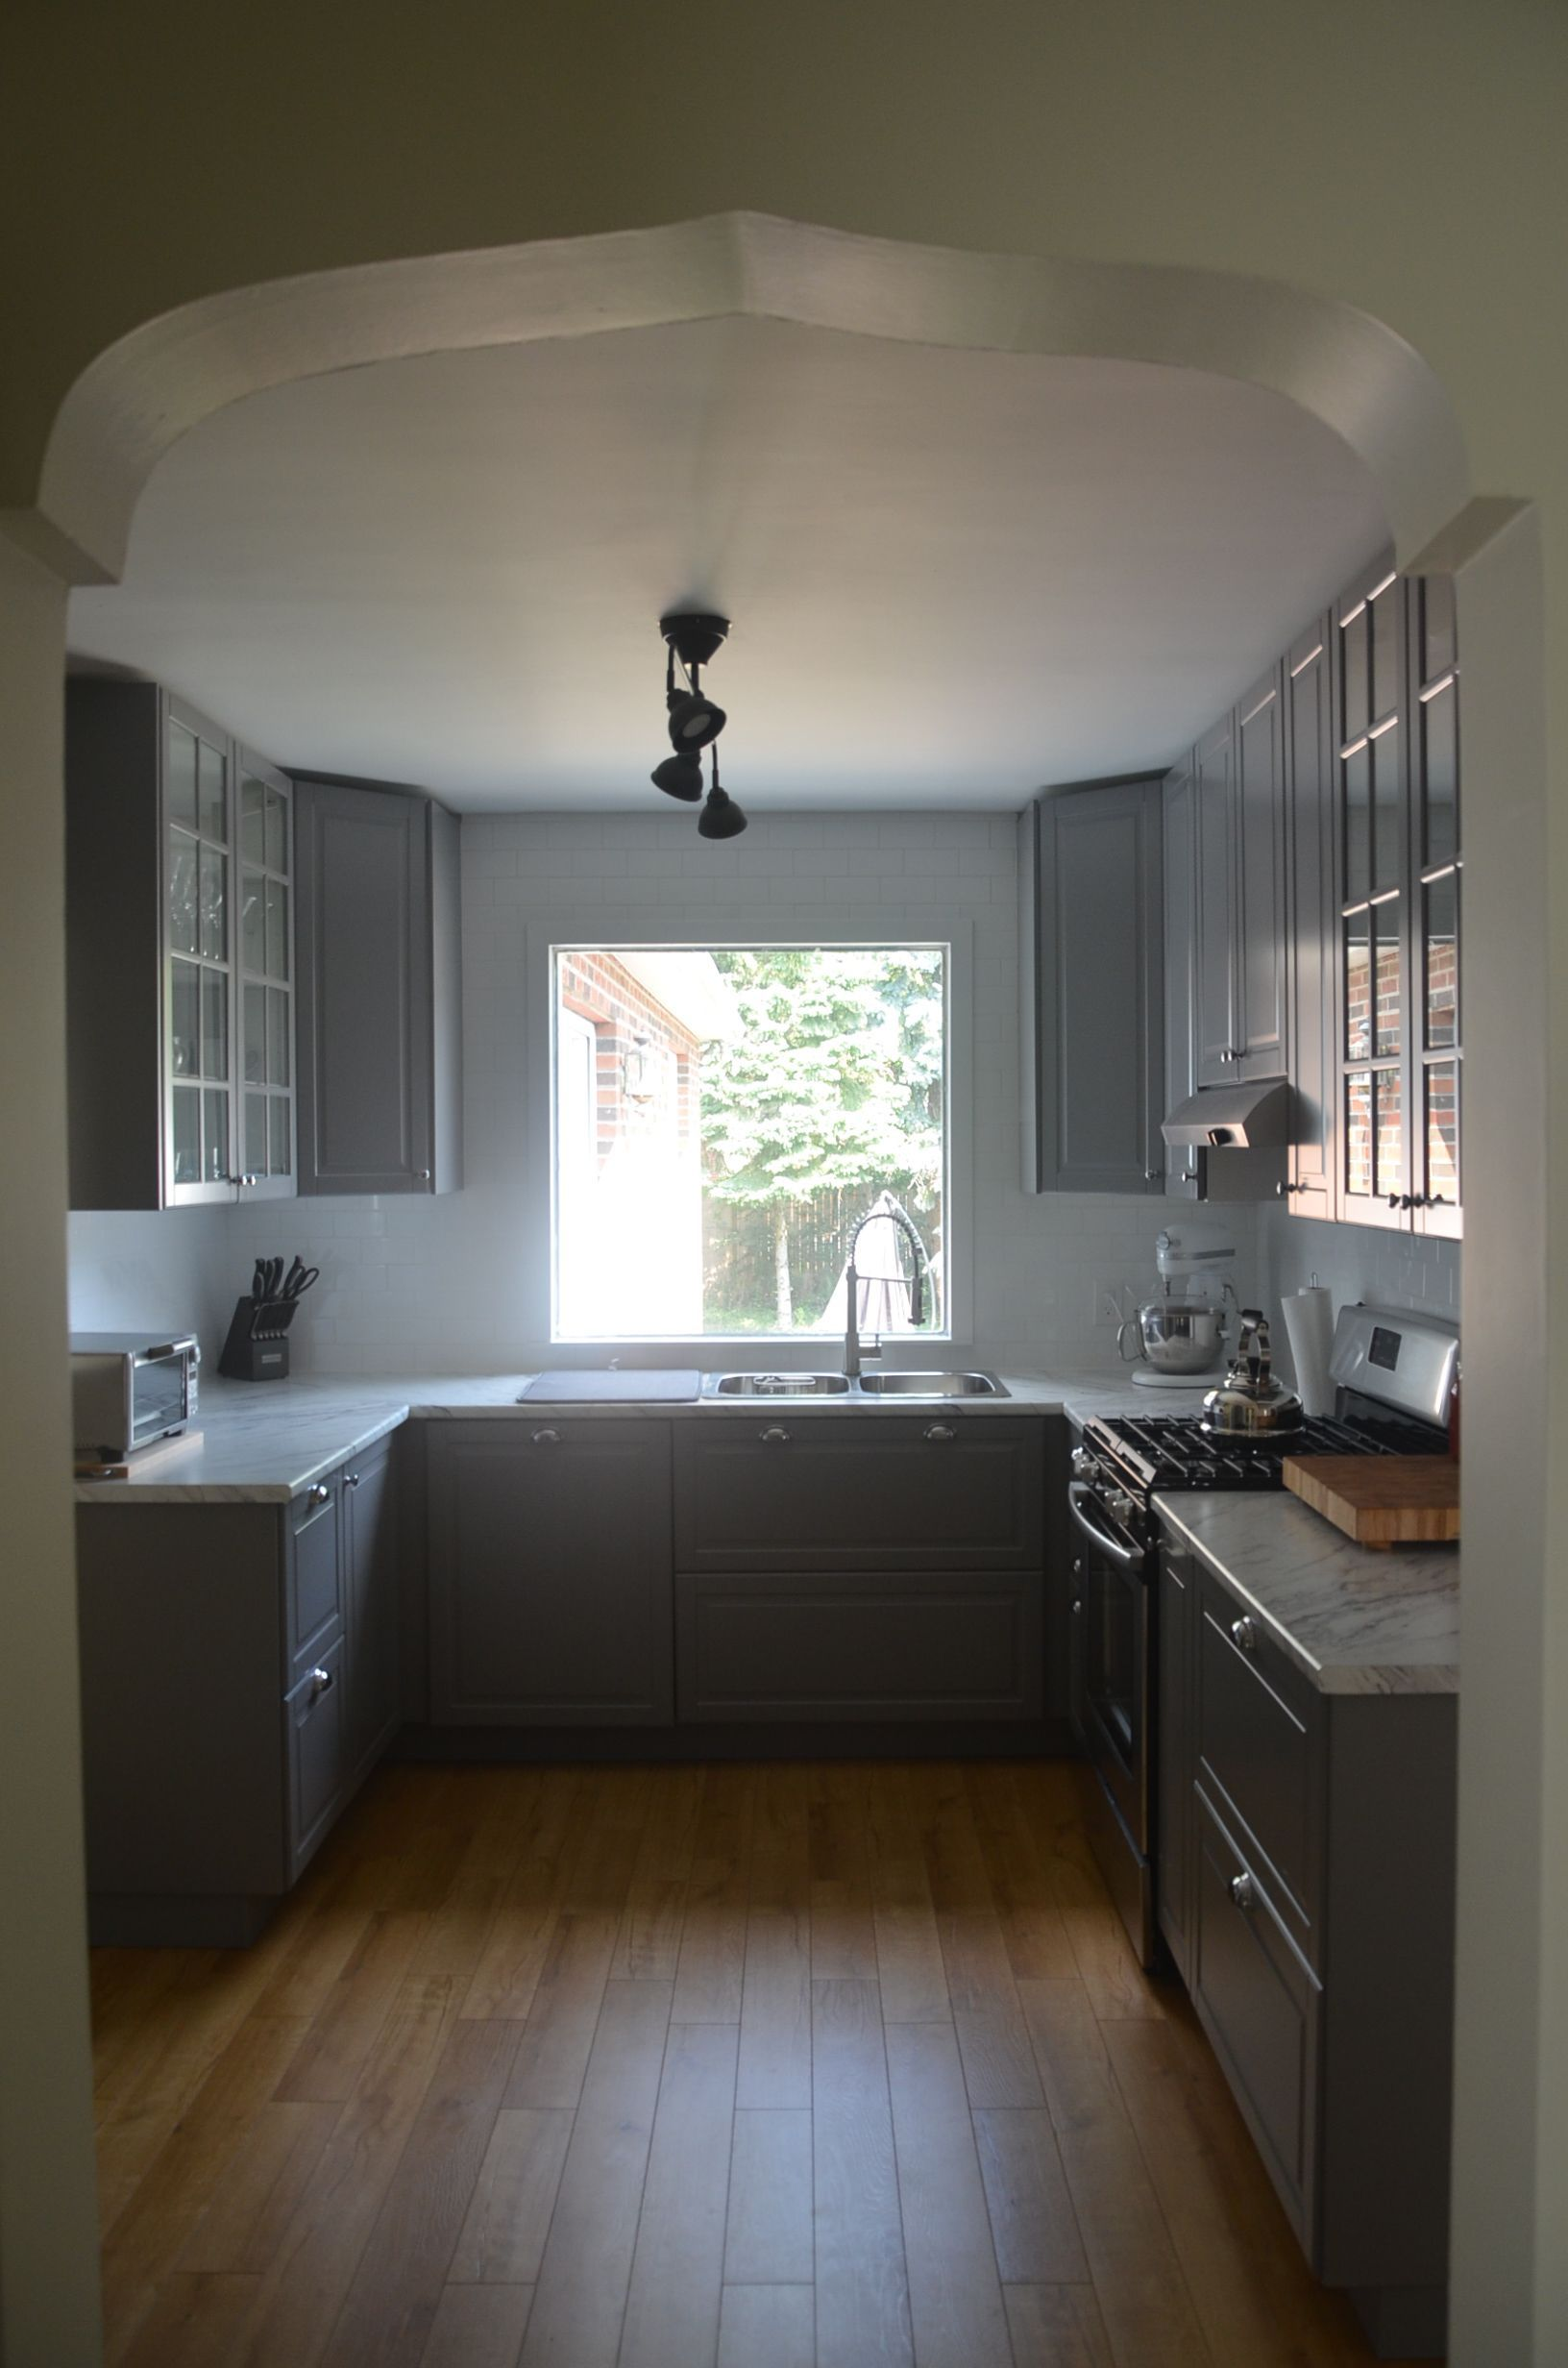 We love that our customers kept the arched doorways for their IKEA